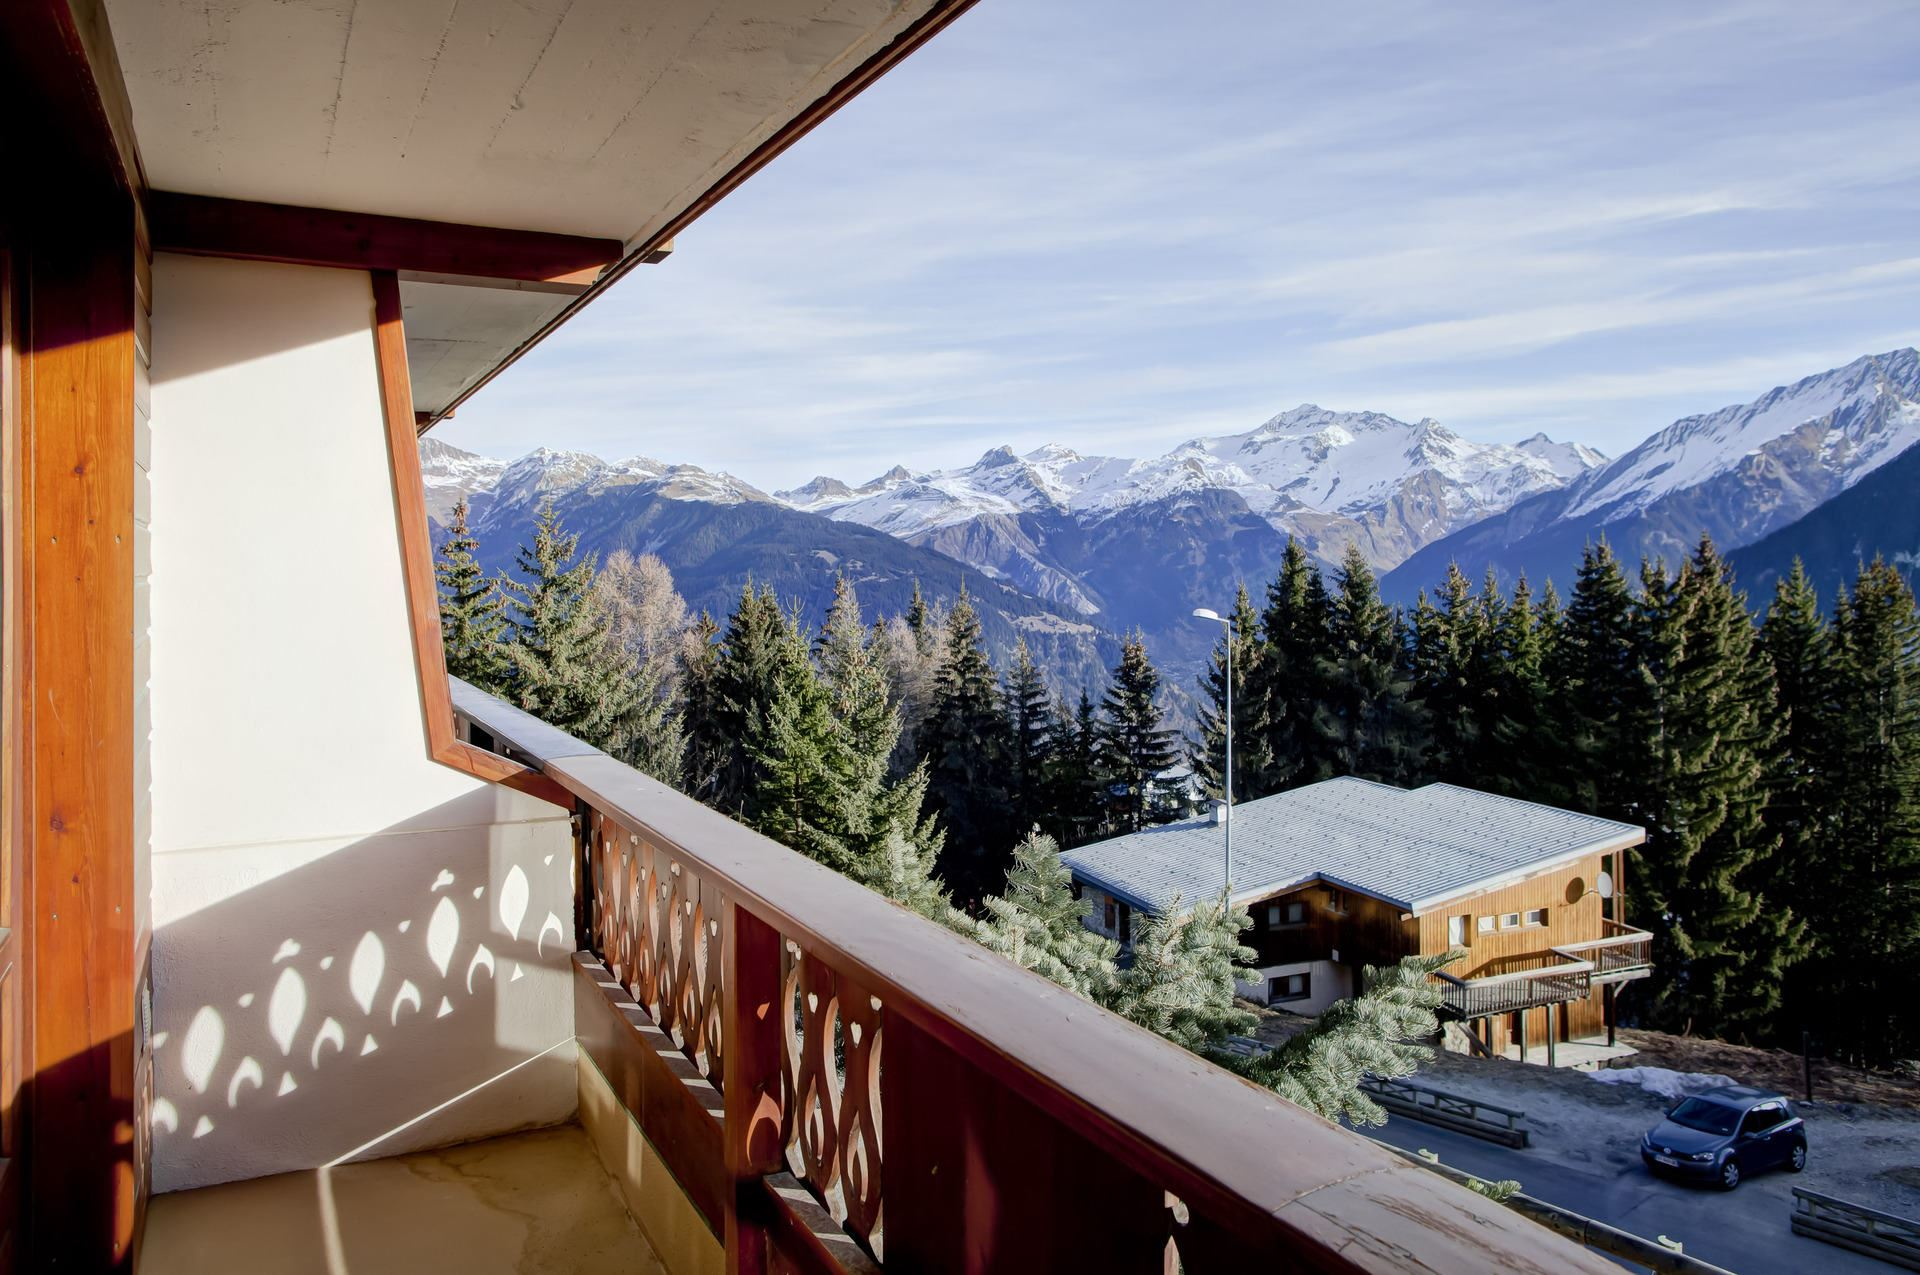 3 rooms 6 people ski in ski out / SOLEIL LEVANT B77/78 (Mountain)